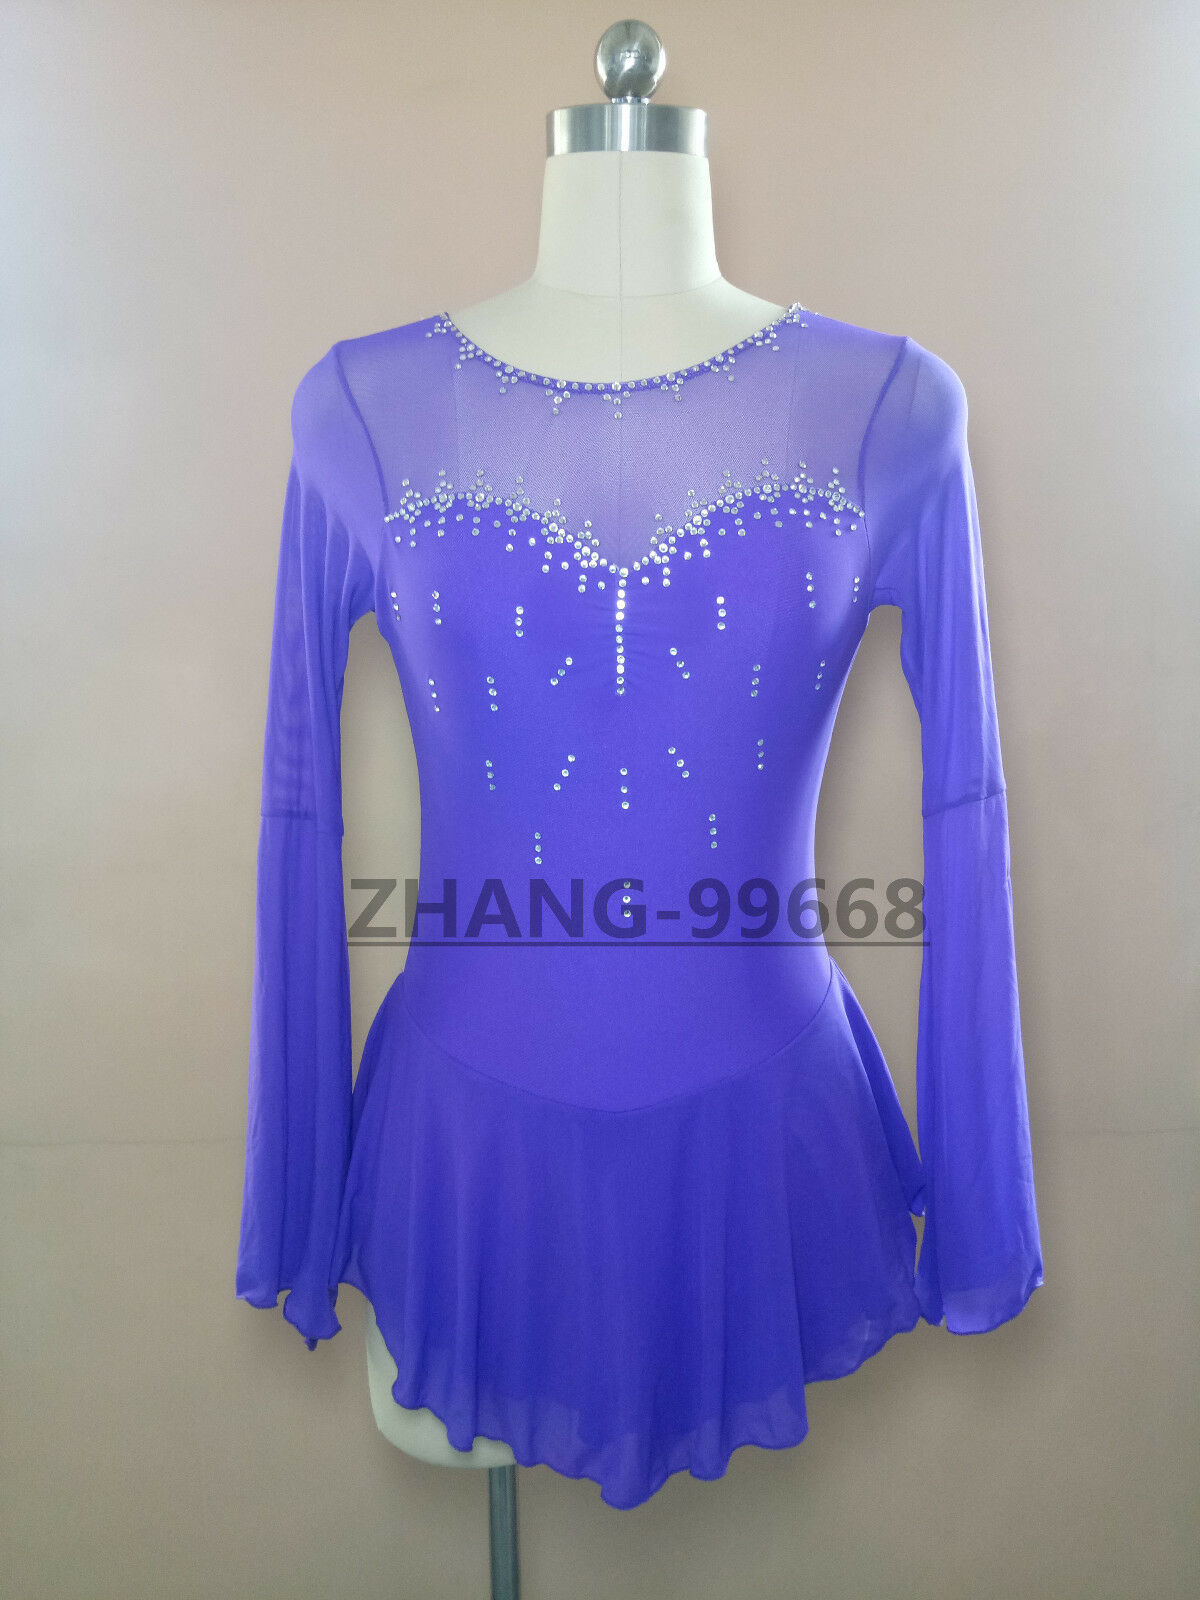 New Ice Figure Skating Dress Baton Twirling Dress For Competitio